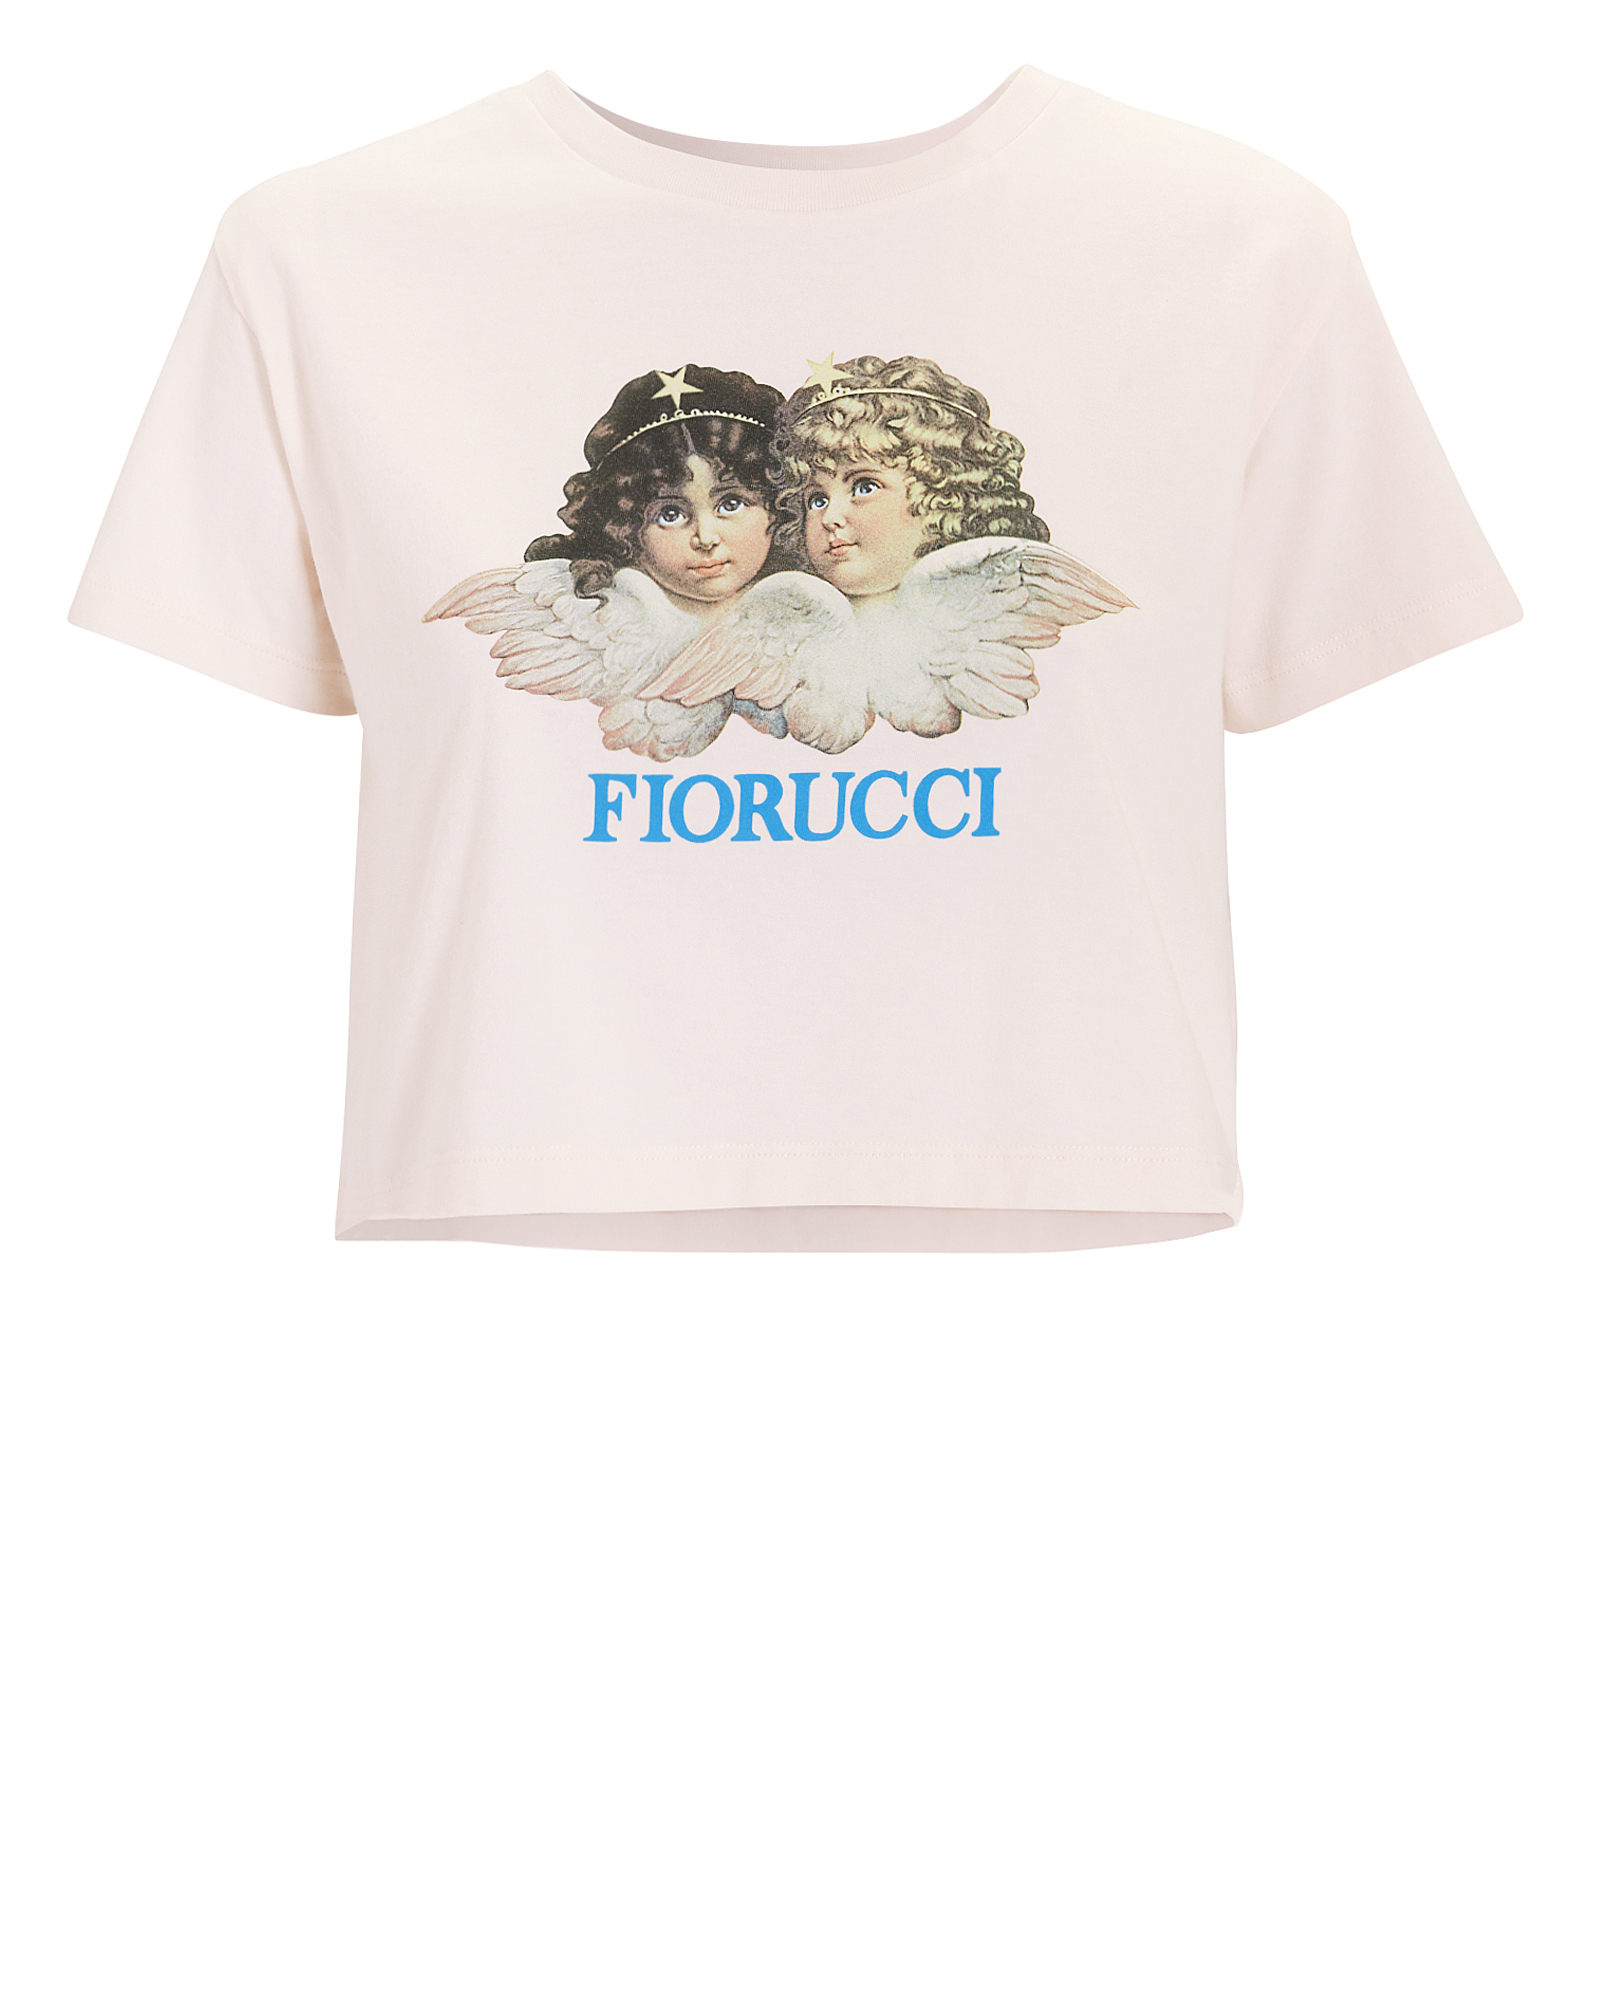 FIORUCCI VINTAGE ANGELS CROED INK T-SHIRT INK